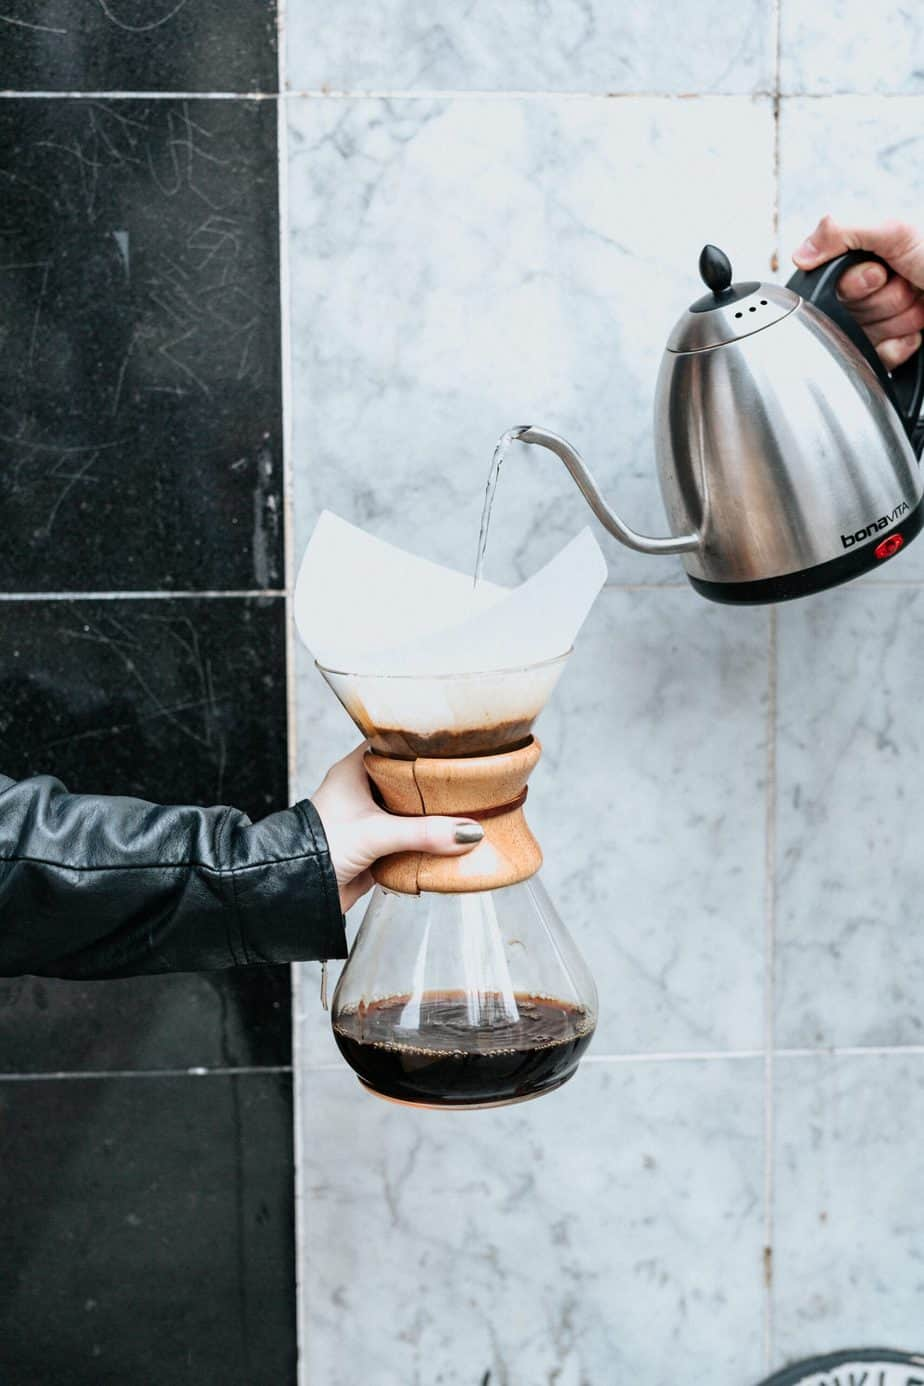 How Does An Electric Kettle Work